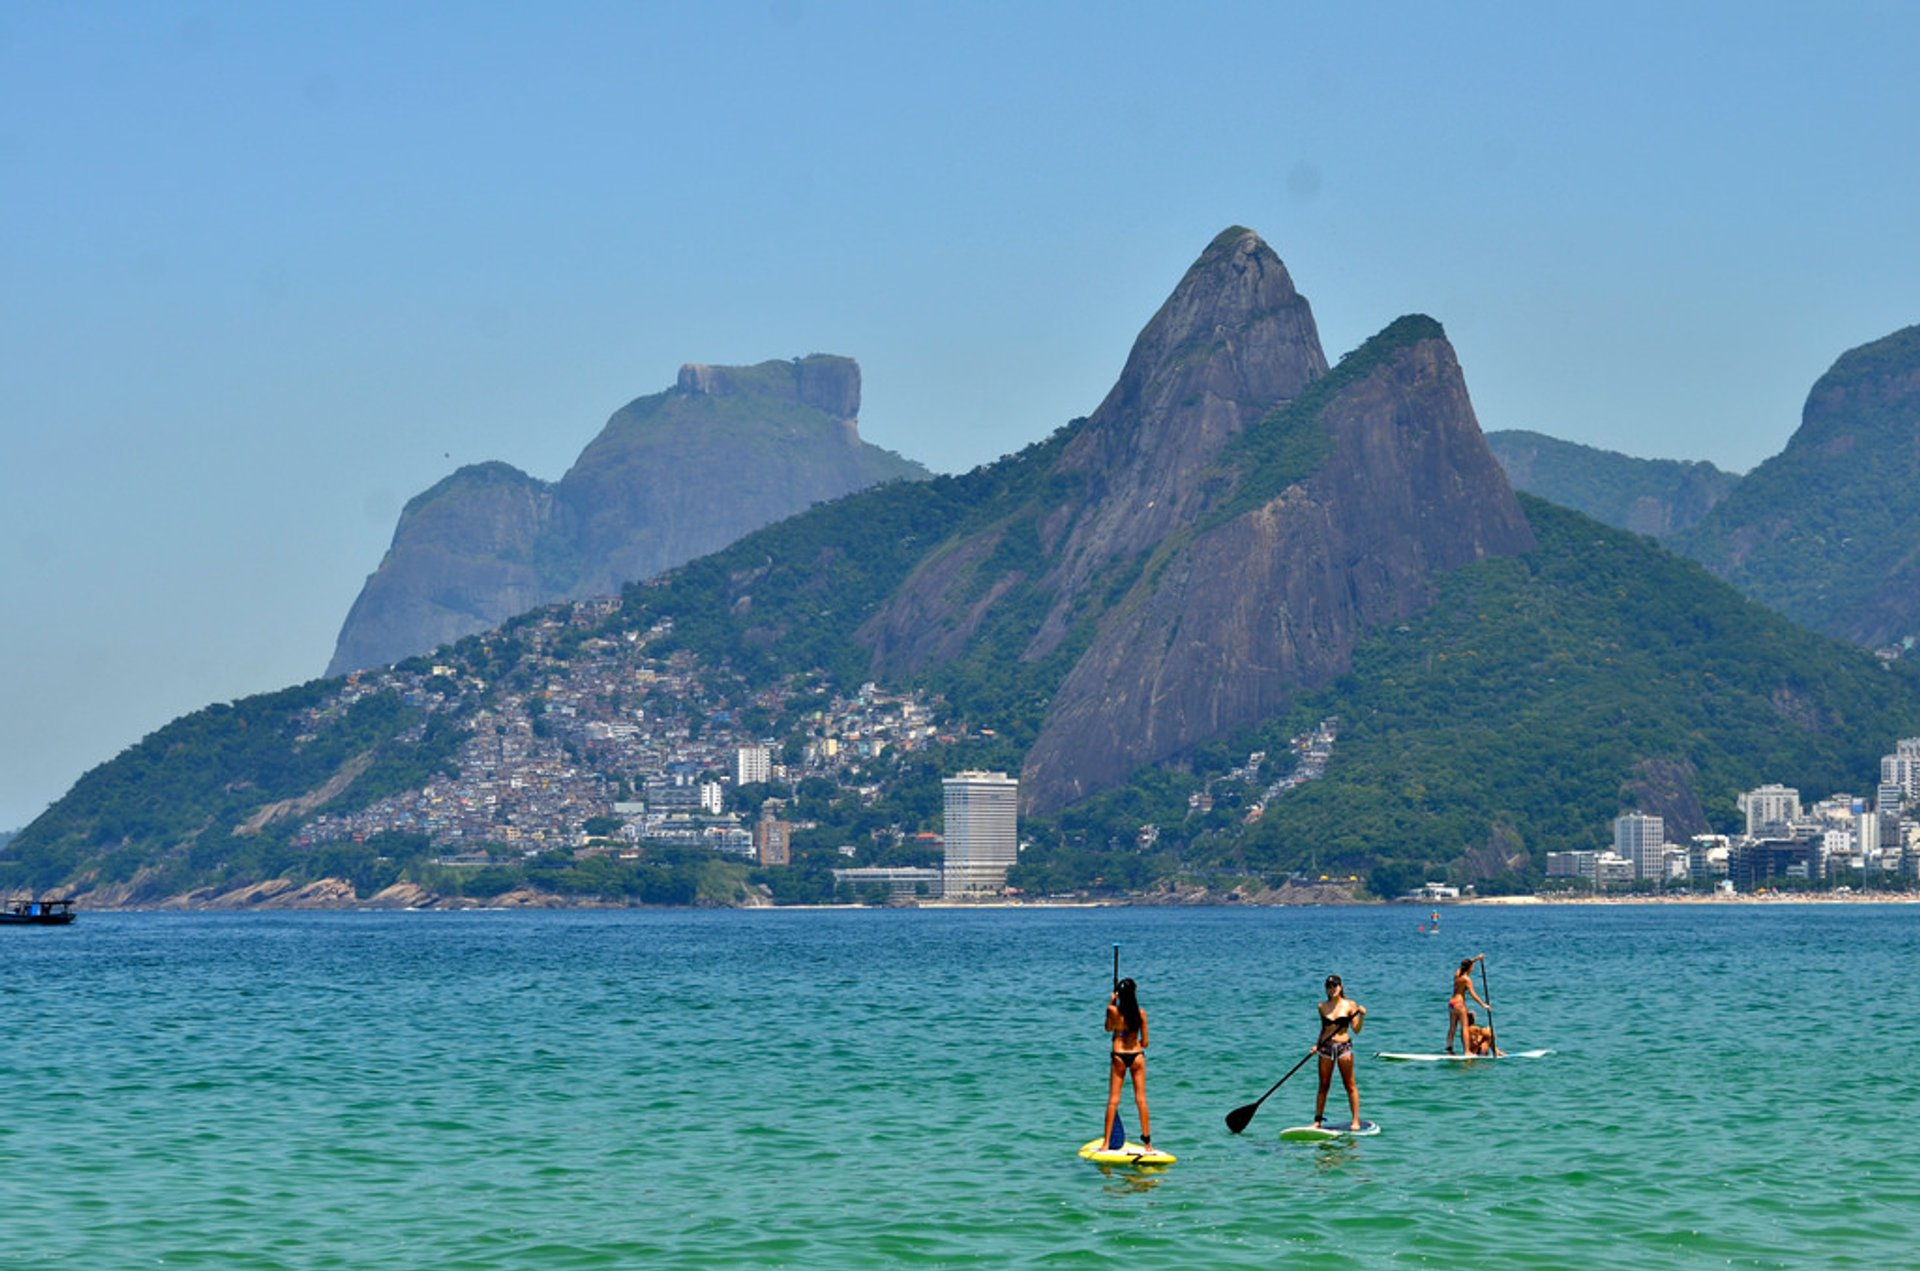 Stand Up Paddle Boarding in Rio de Janeiro 2019 - Best Time